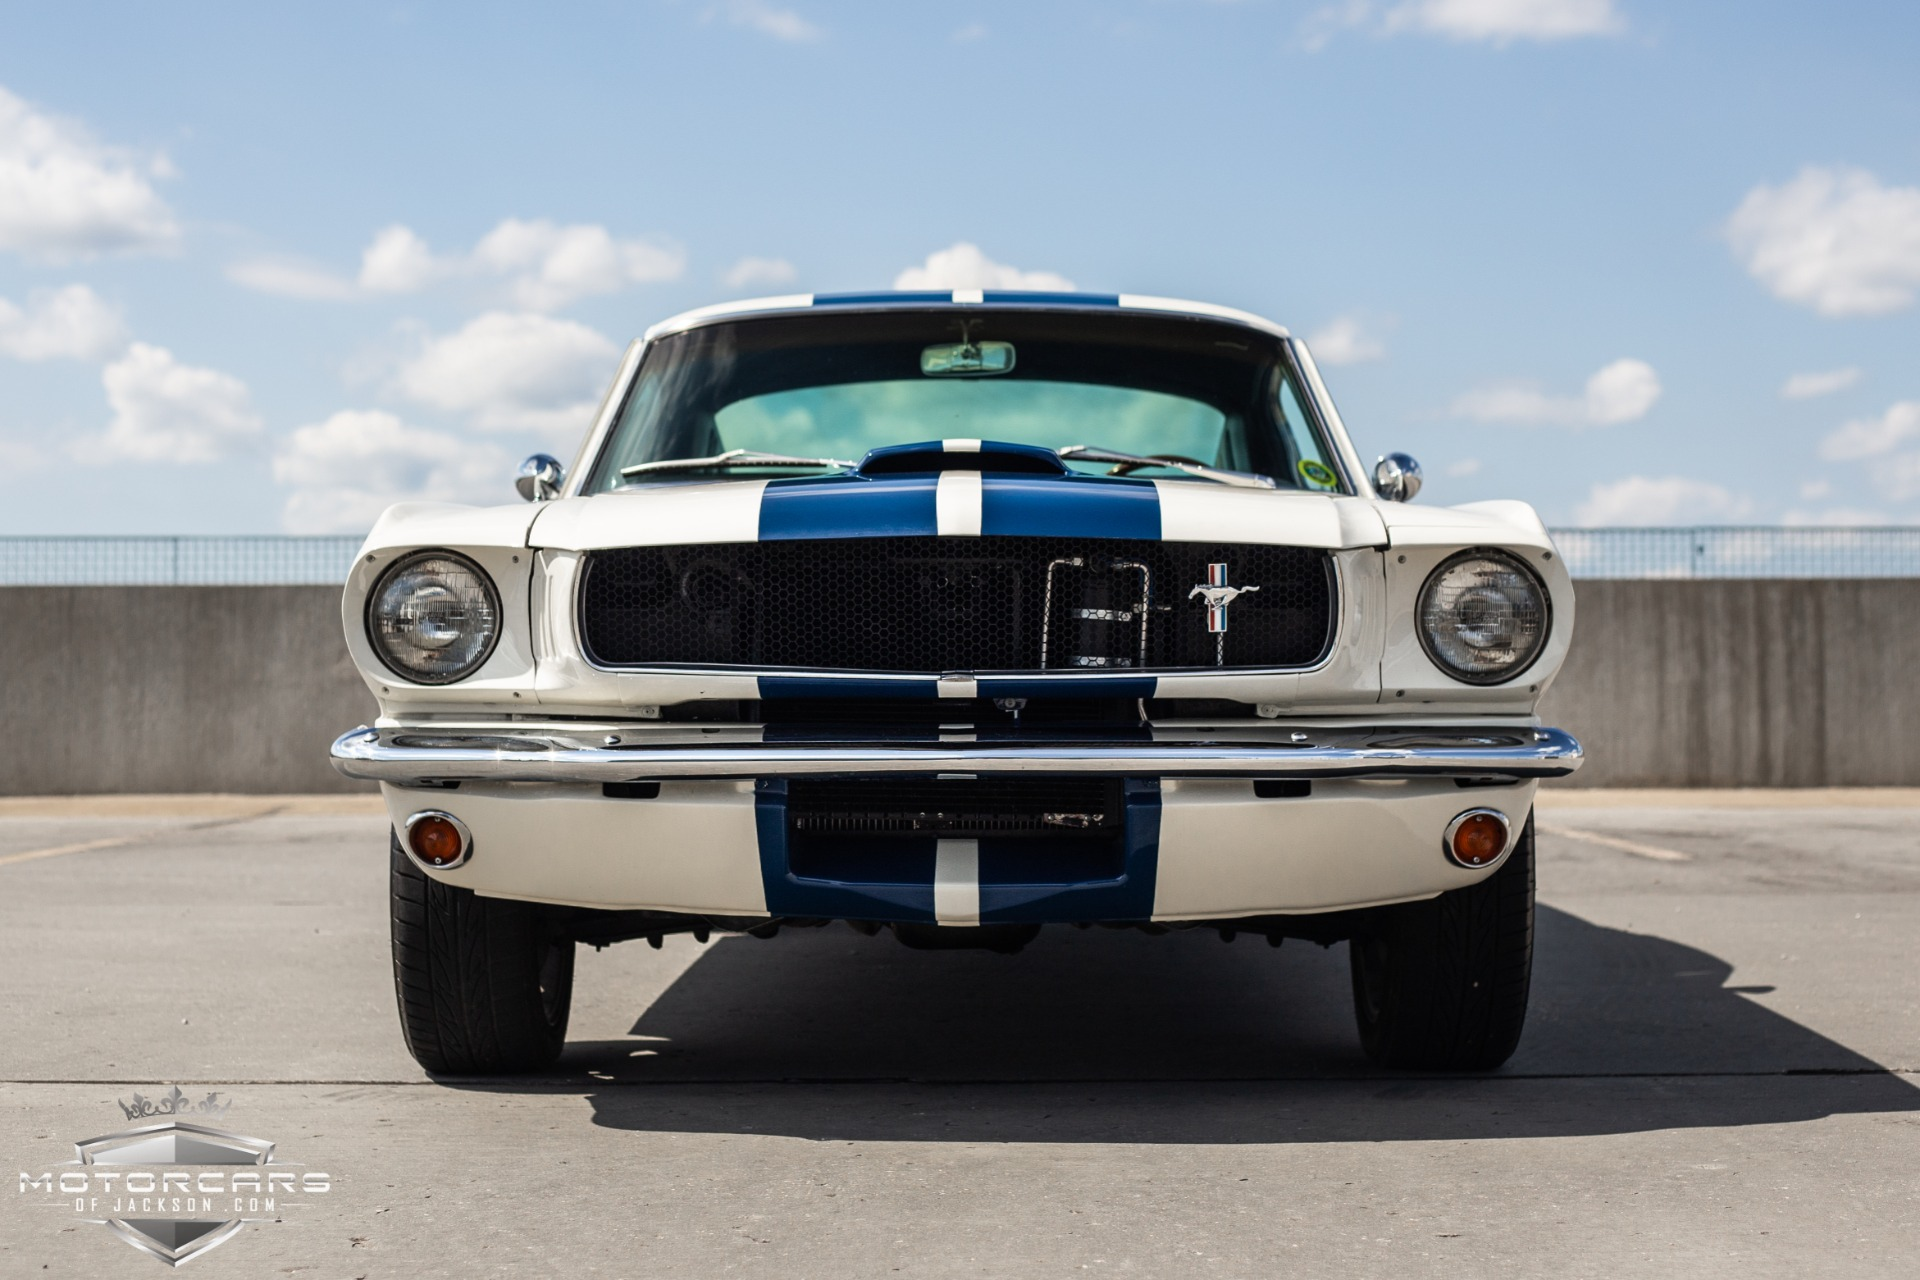 Used-1965-Ford-Mustang-Fastback-Jackson-MS